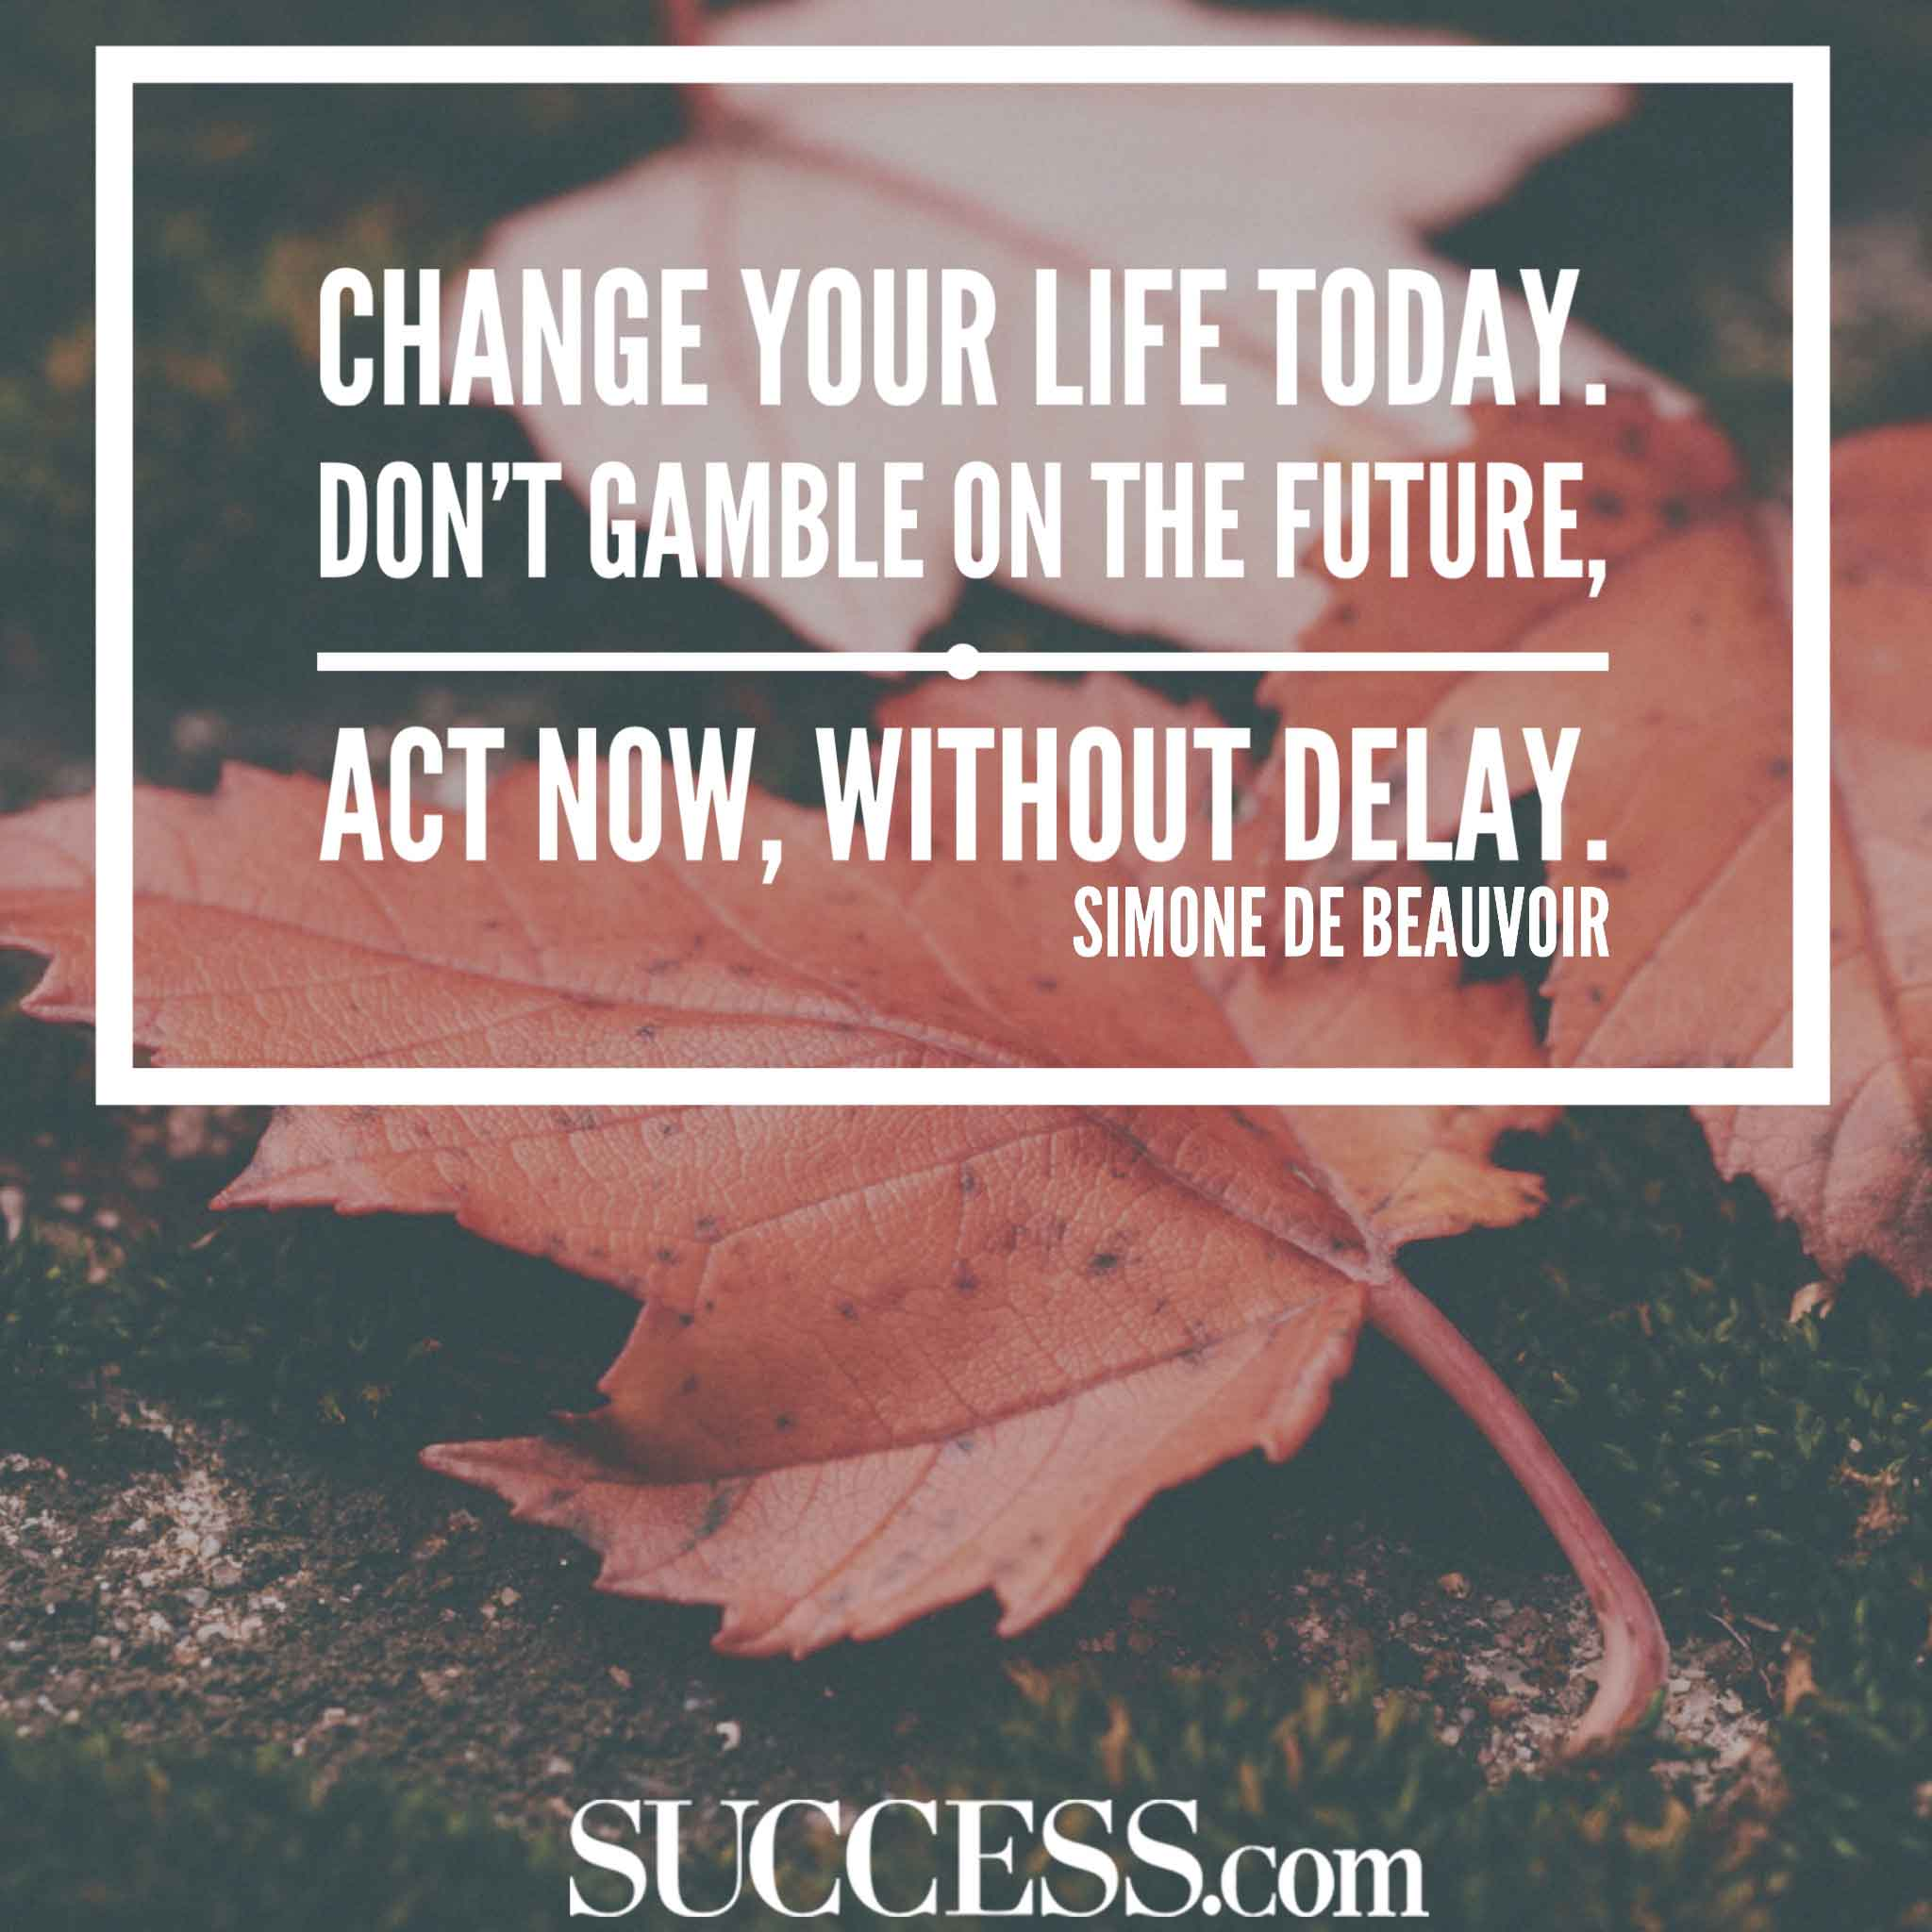 Change Your Life Today DonT Gamble Quote